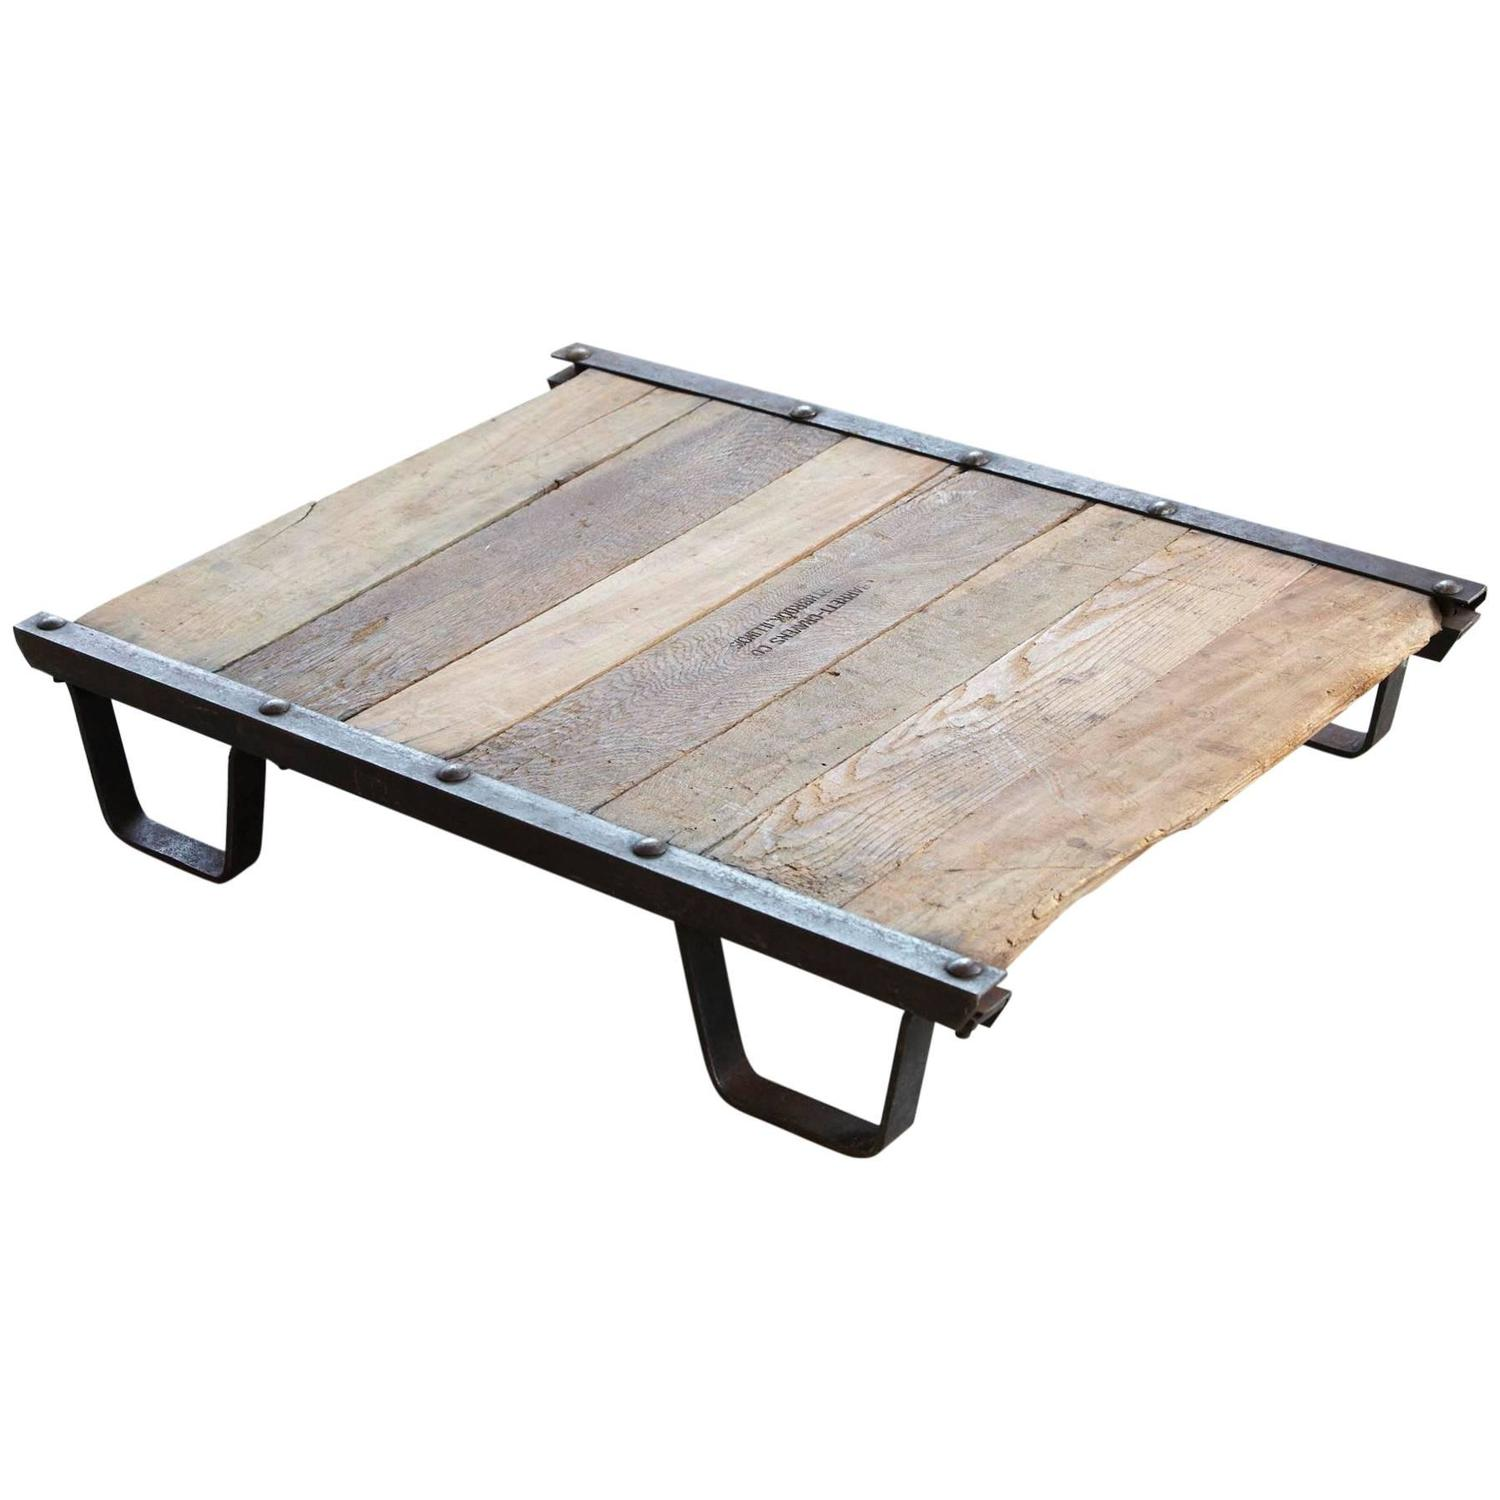 Vintage Industrial Steel And Wood Skid Platform, Low Coffee Table For Sale  At 1stdibs